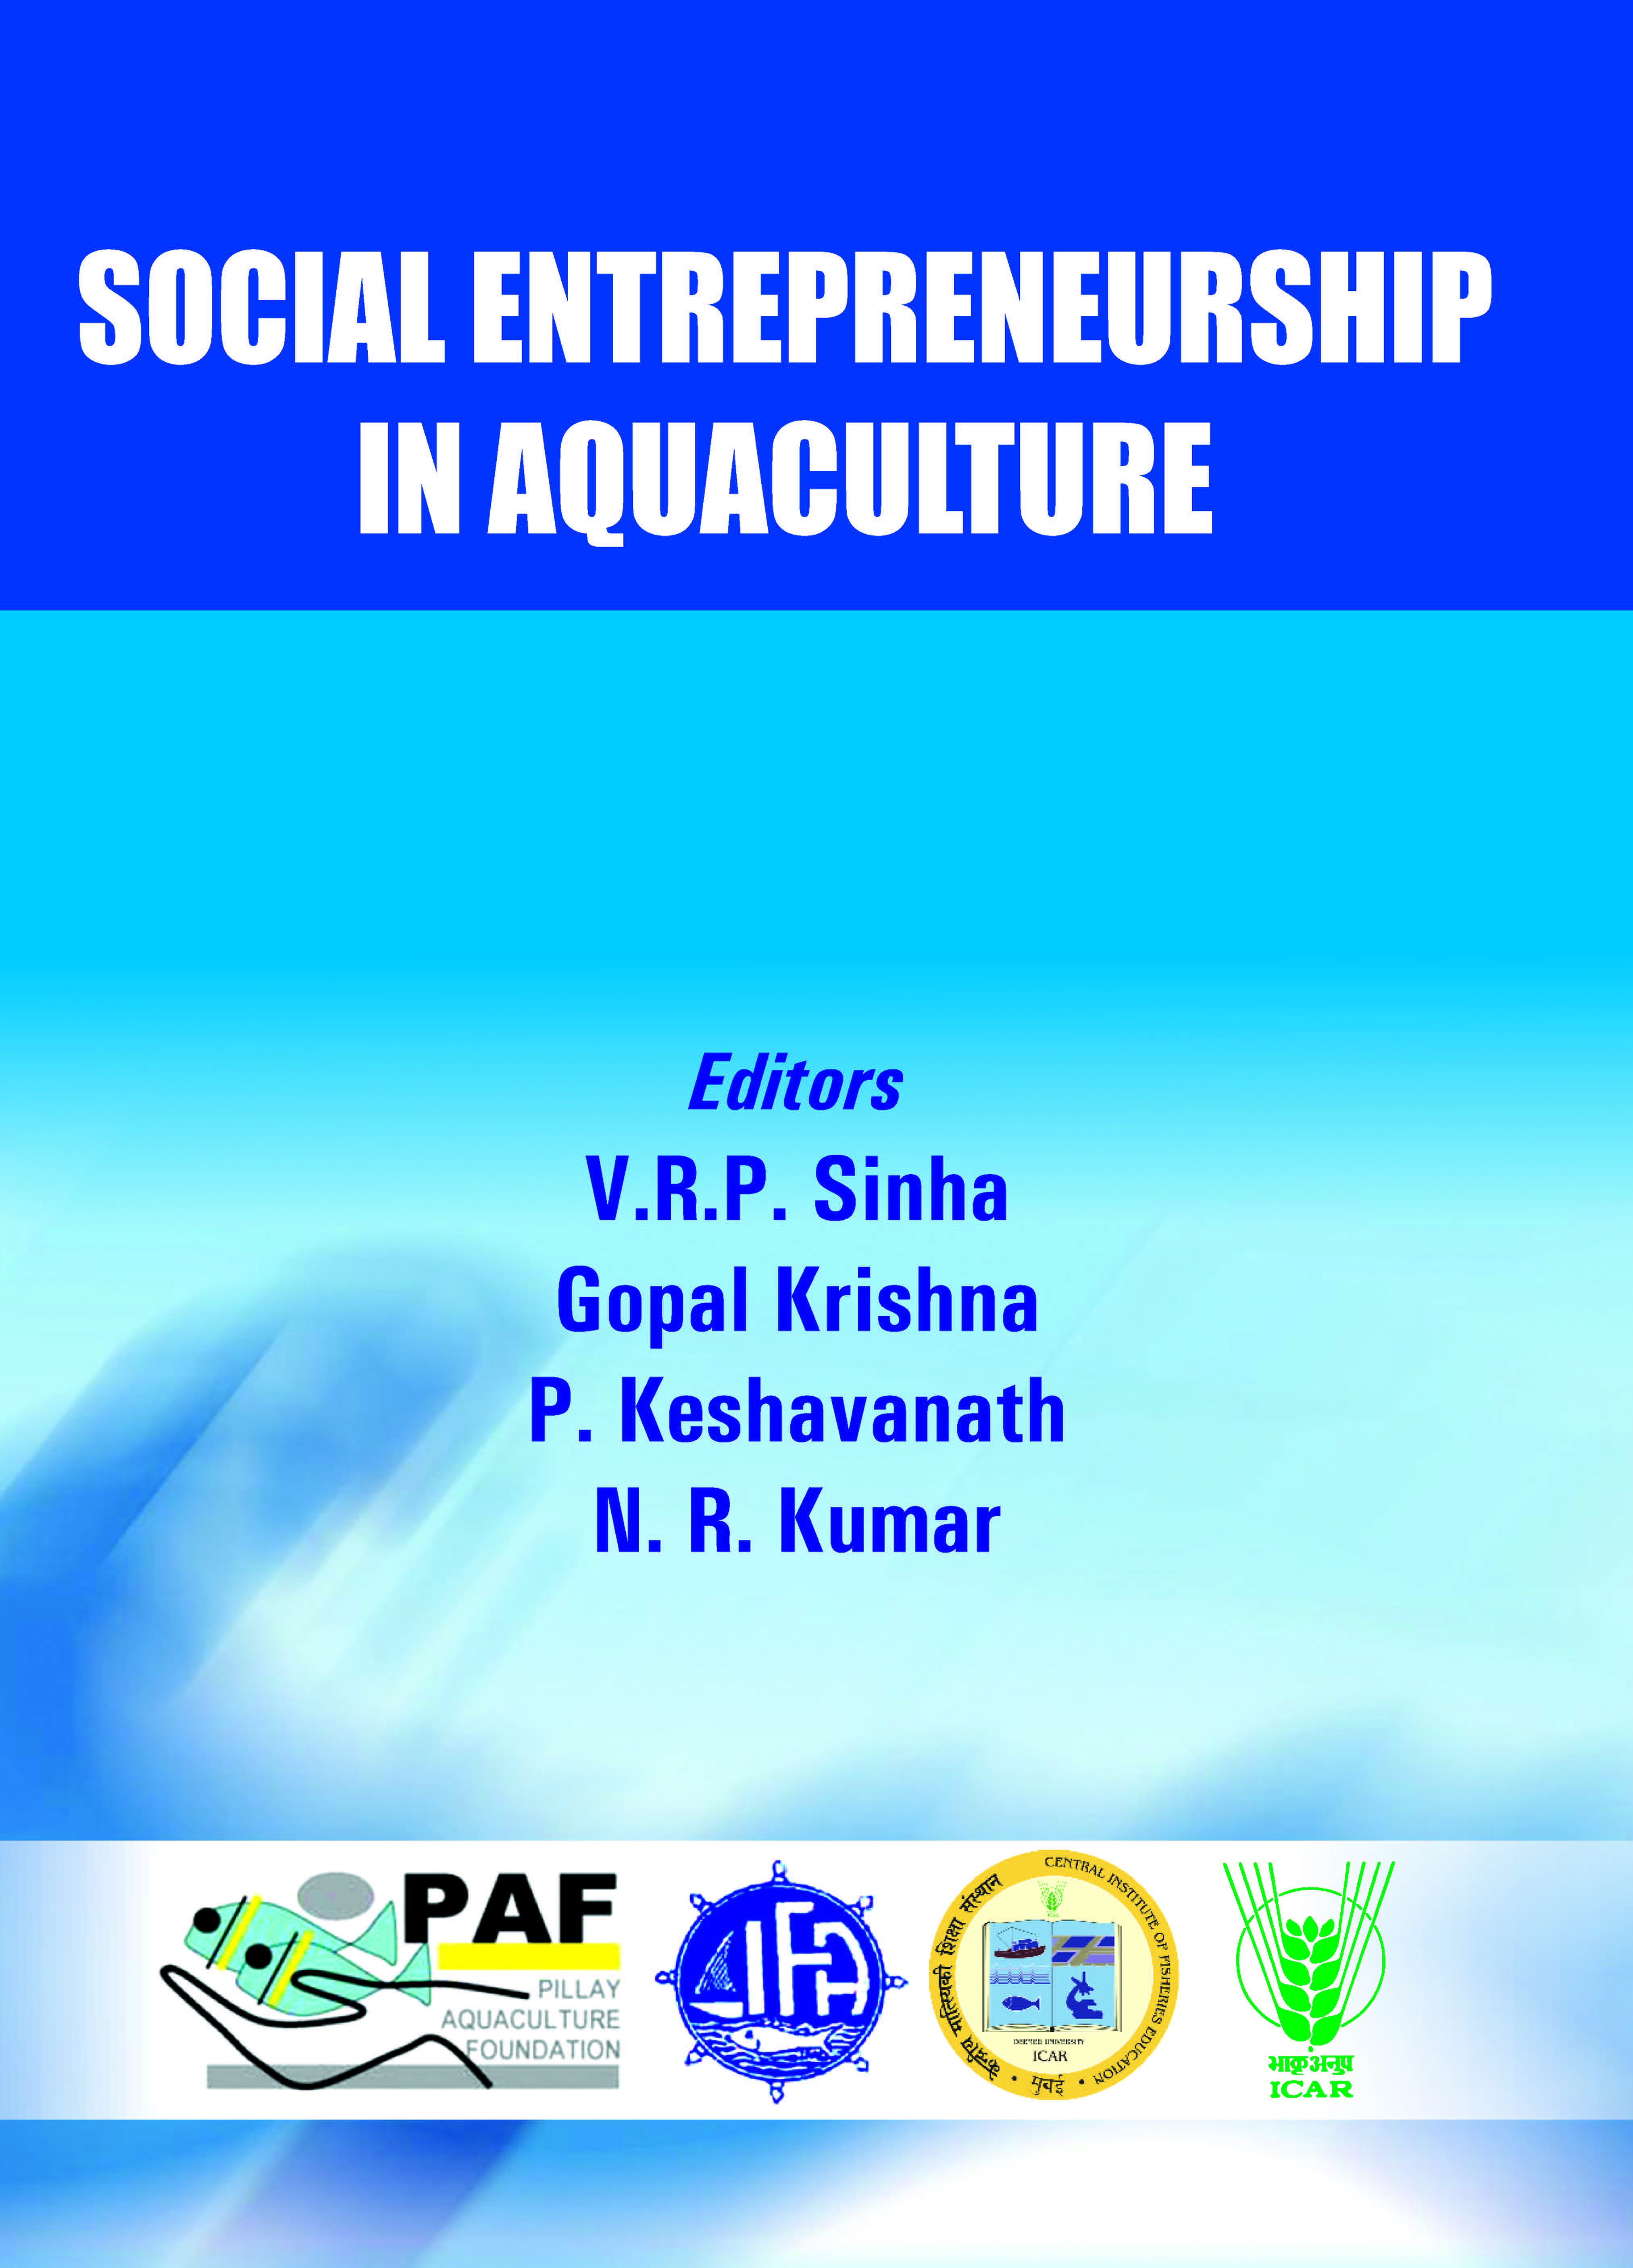 Social Entrepreneurship in Aquaculture